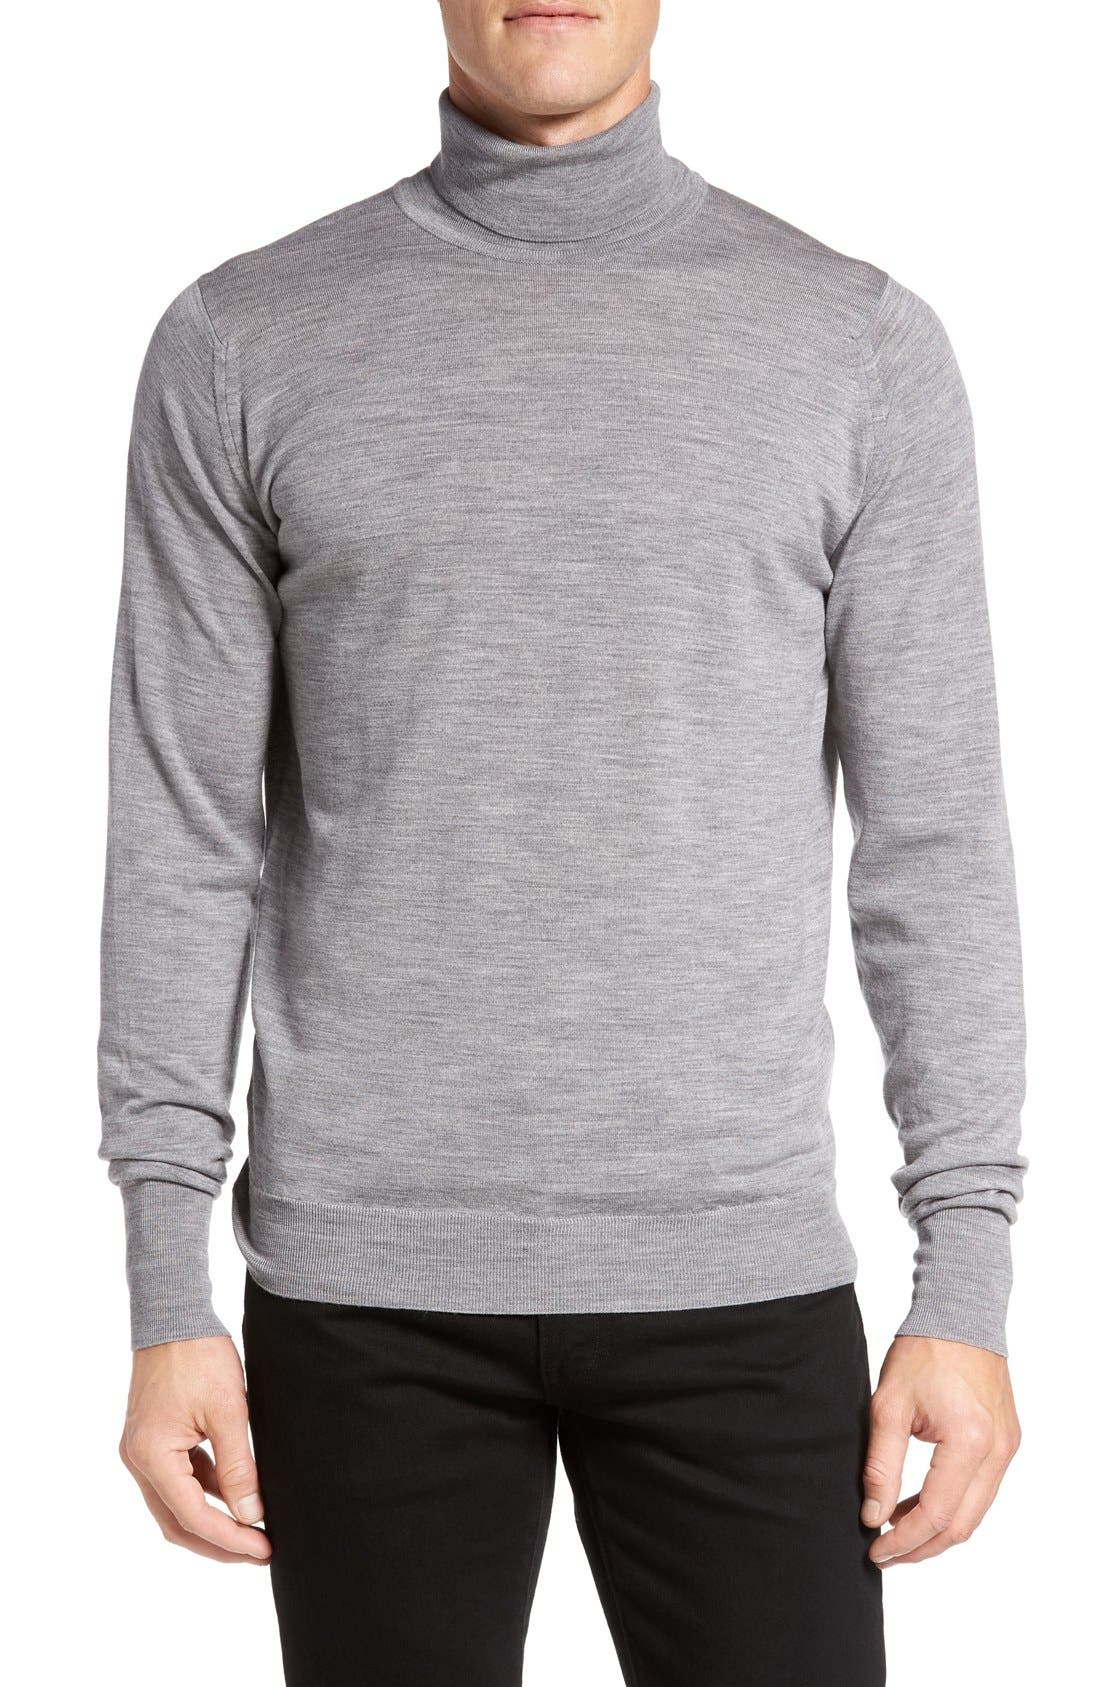 Main Image - John Smedley 'Richards' Easy Fit Turtleneck Wool Sweater